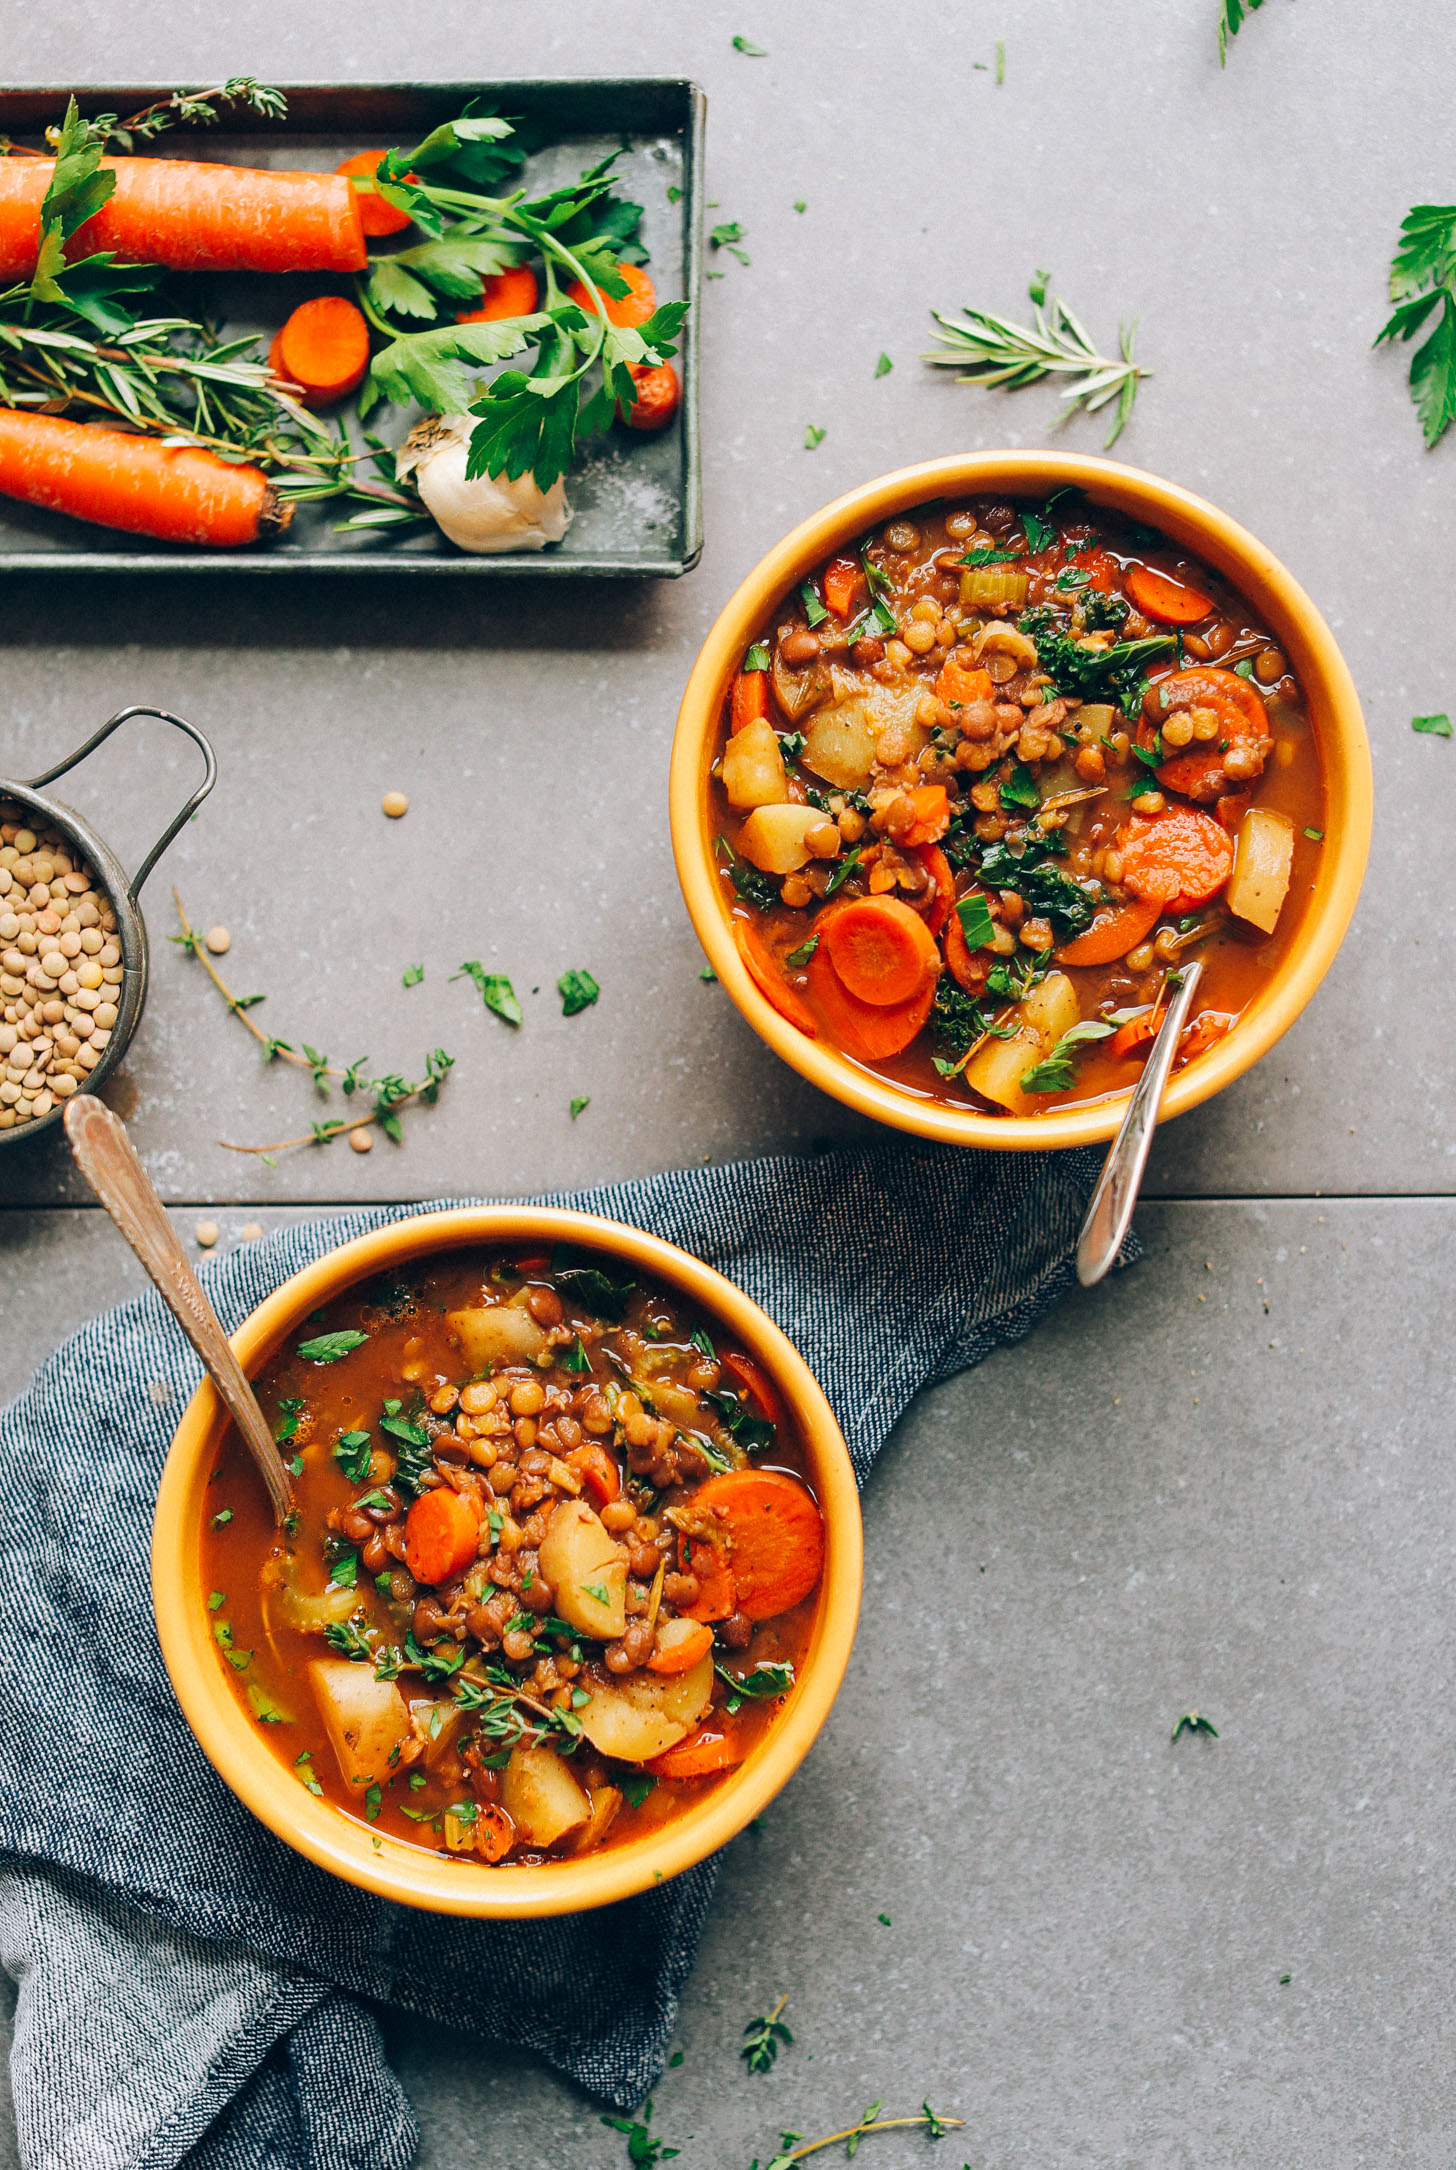 Two bowls of homemade vegetable-packed lentil soup